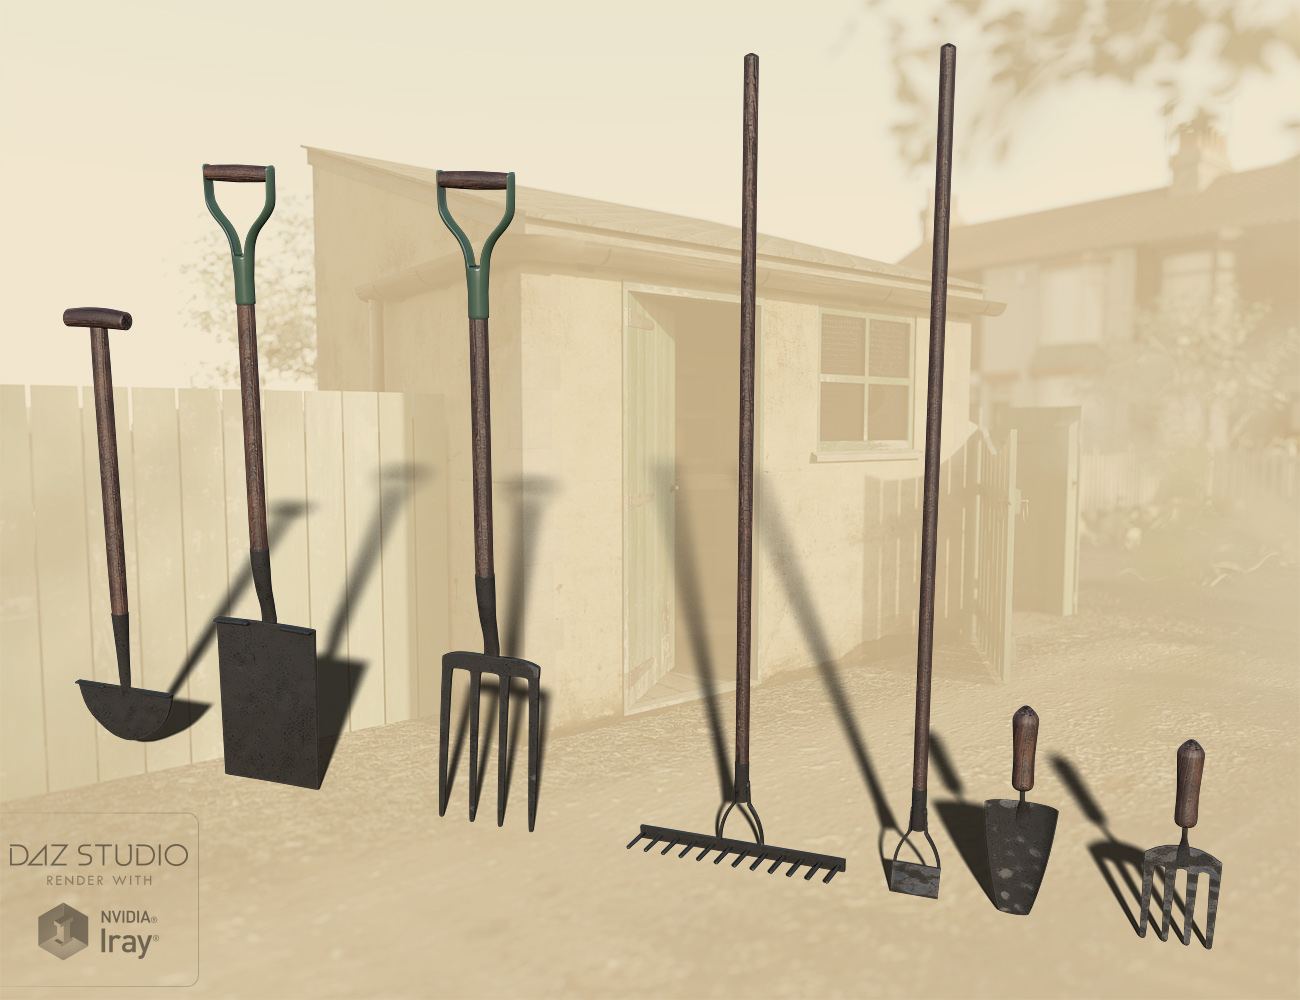 The Gardeners Potting Shed Tools by: 3ansonForbiddenWhispers, 3D Models by Daz 3D